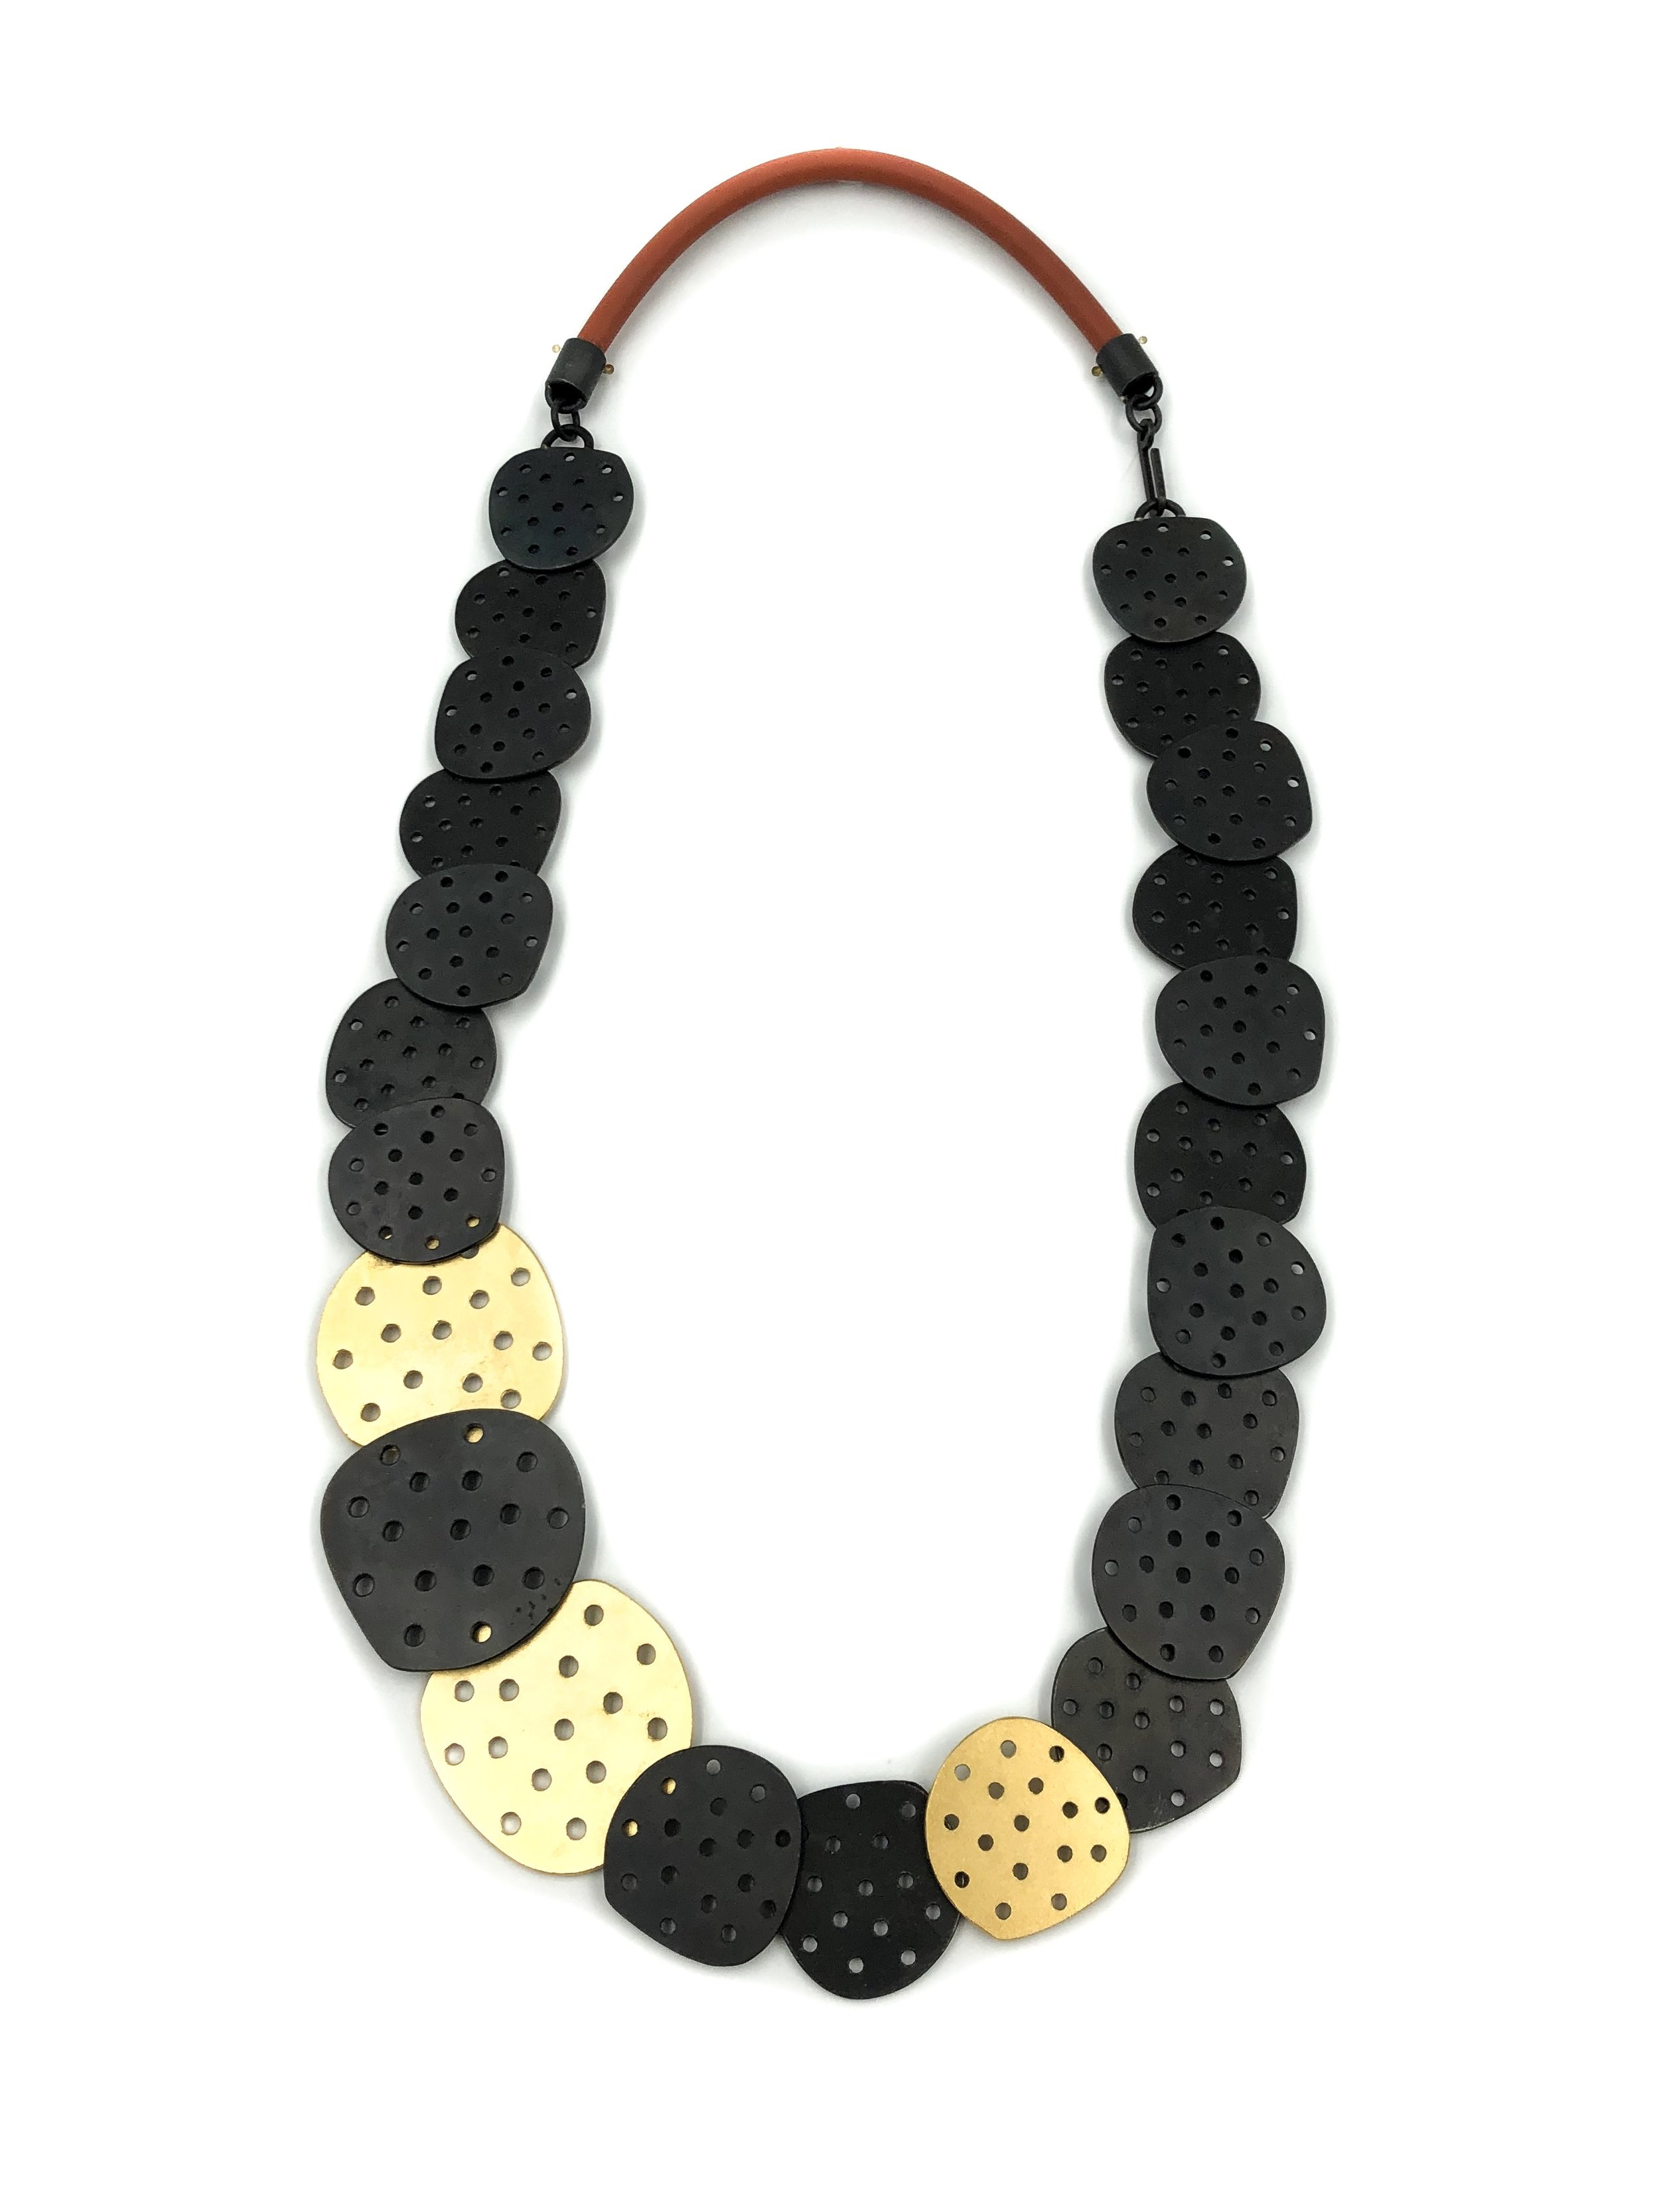 Maia Leppo,  Perforated Pebble Necklace